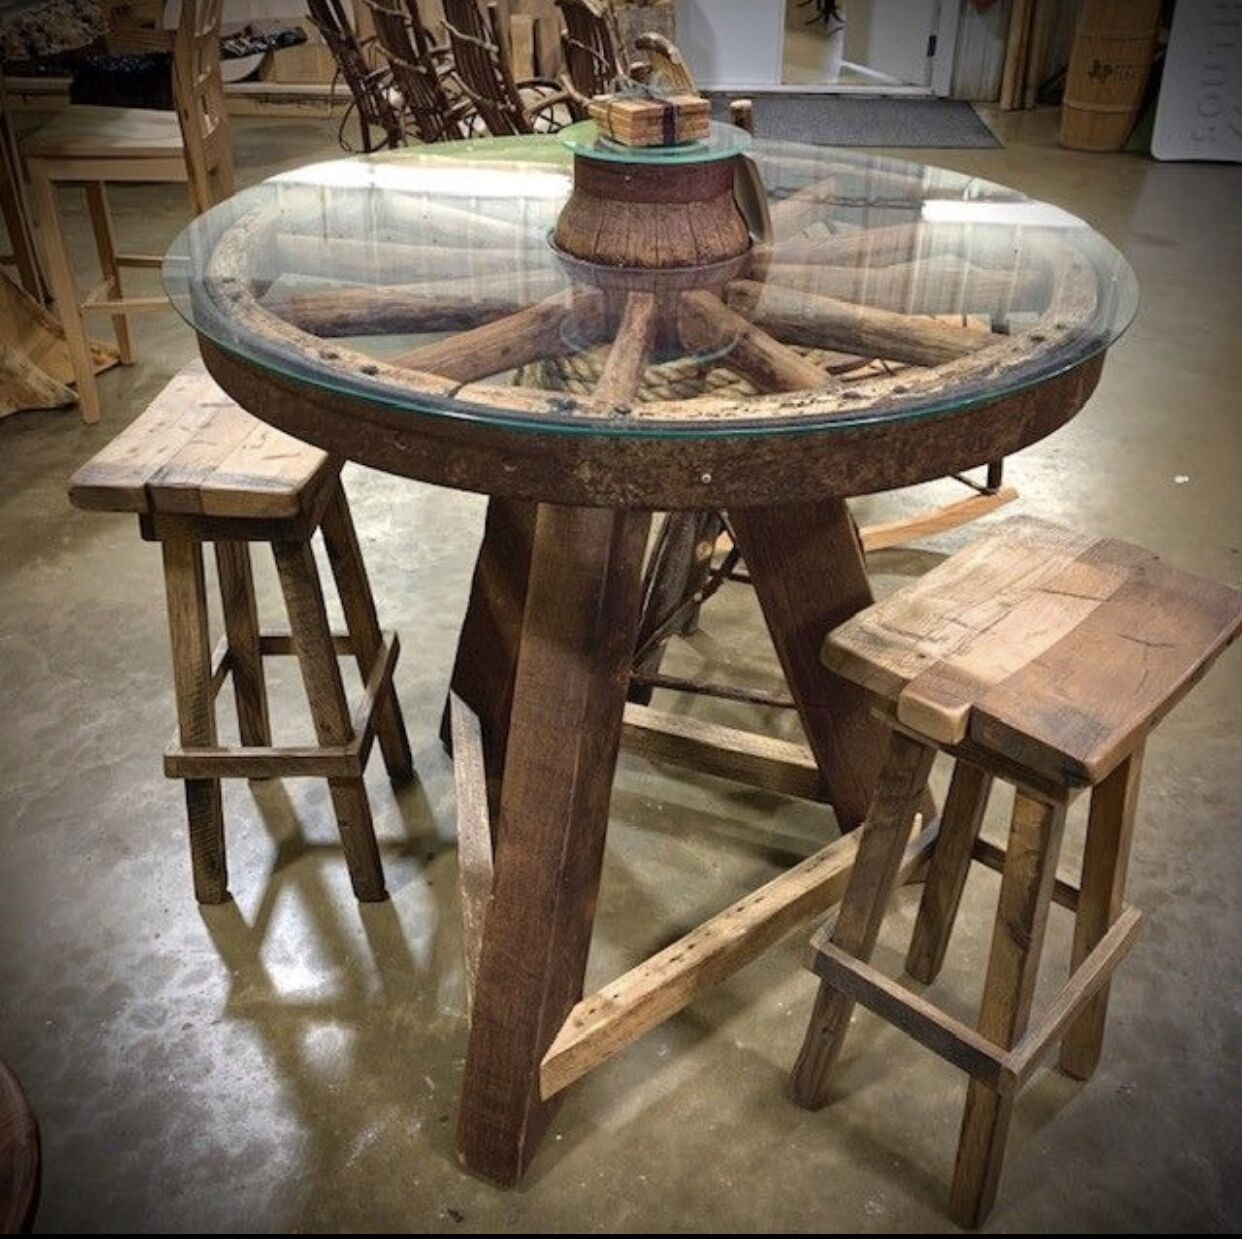 Rustic Wagon Wheel Table The Phillips Forest Store